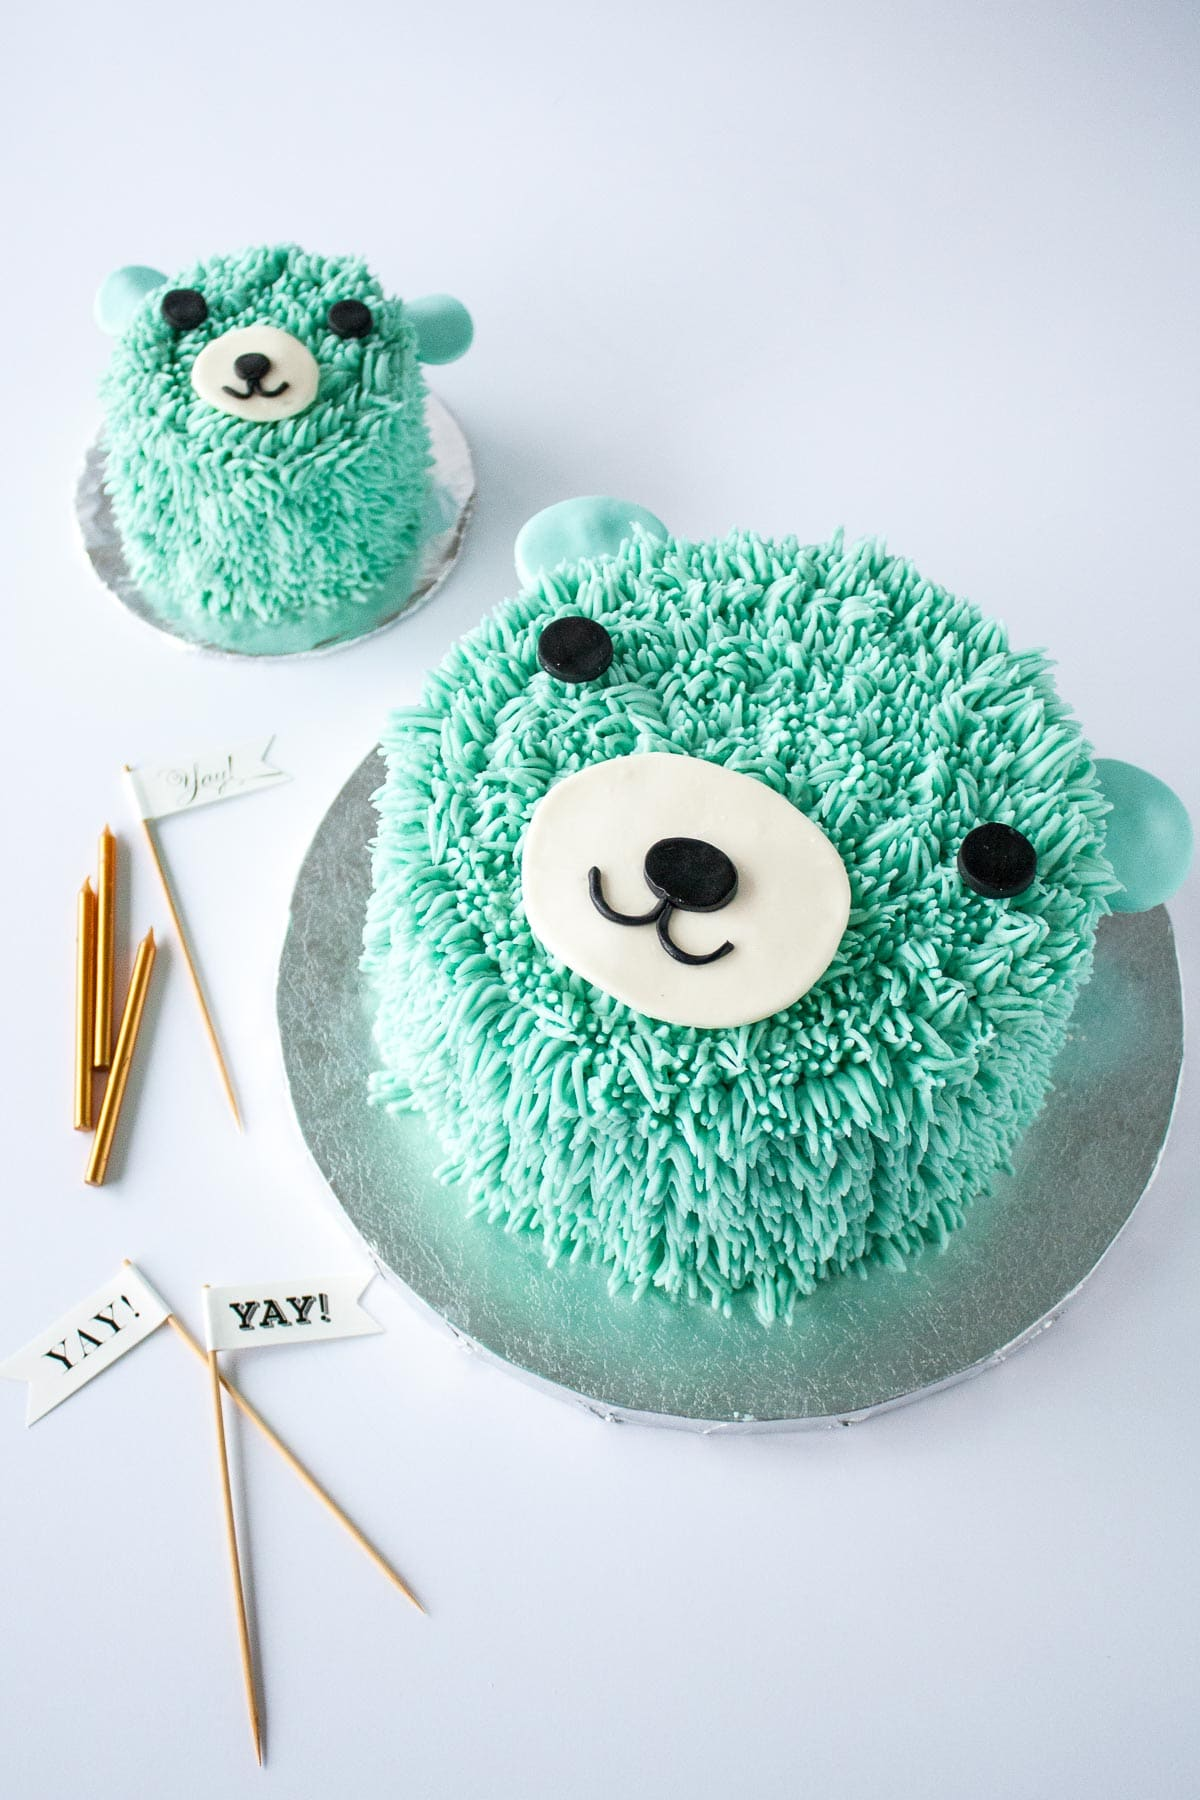 Two blue bear cakes on a white background.